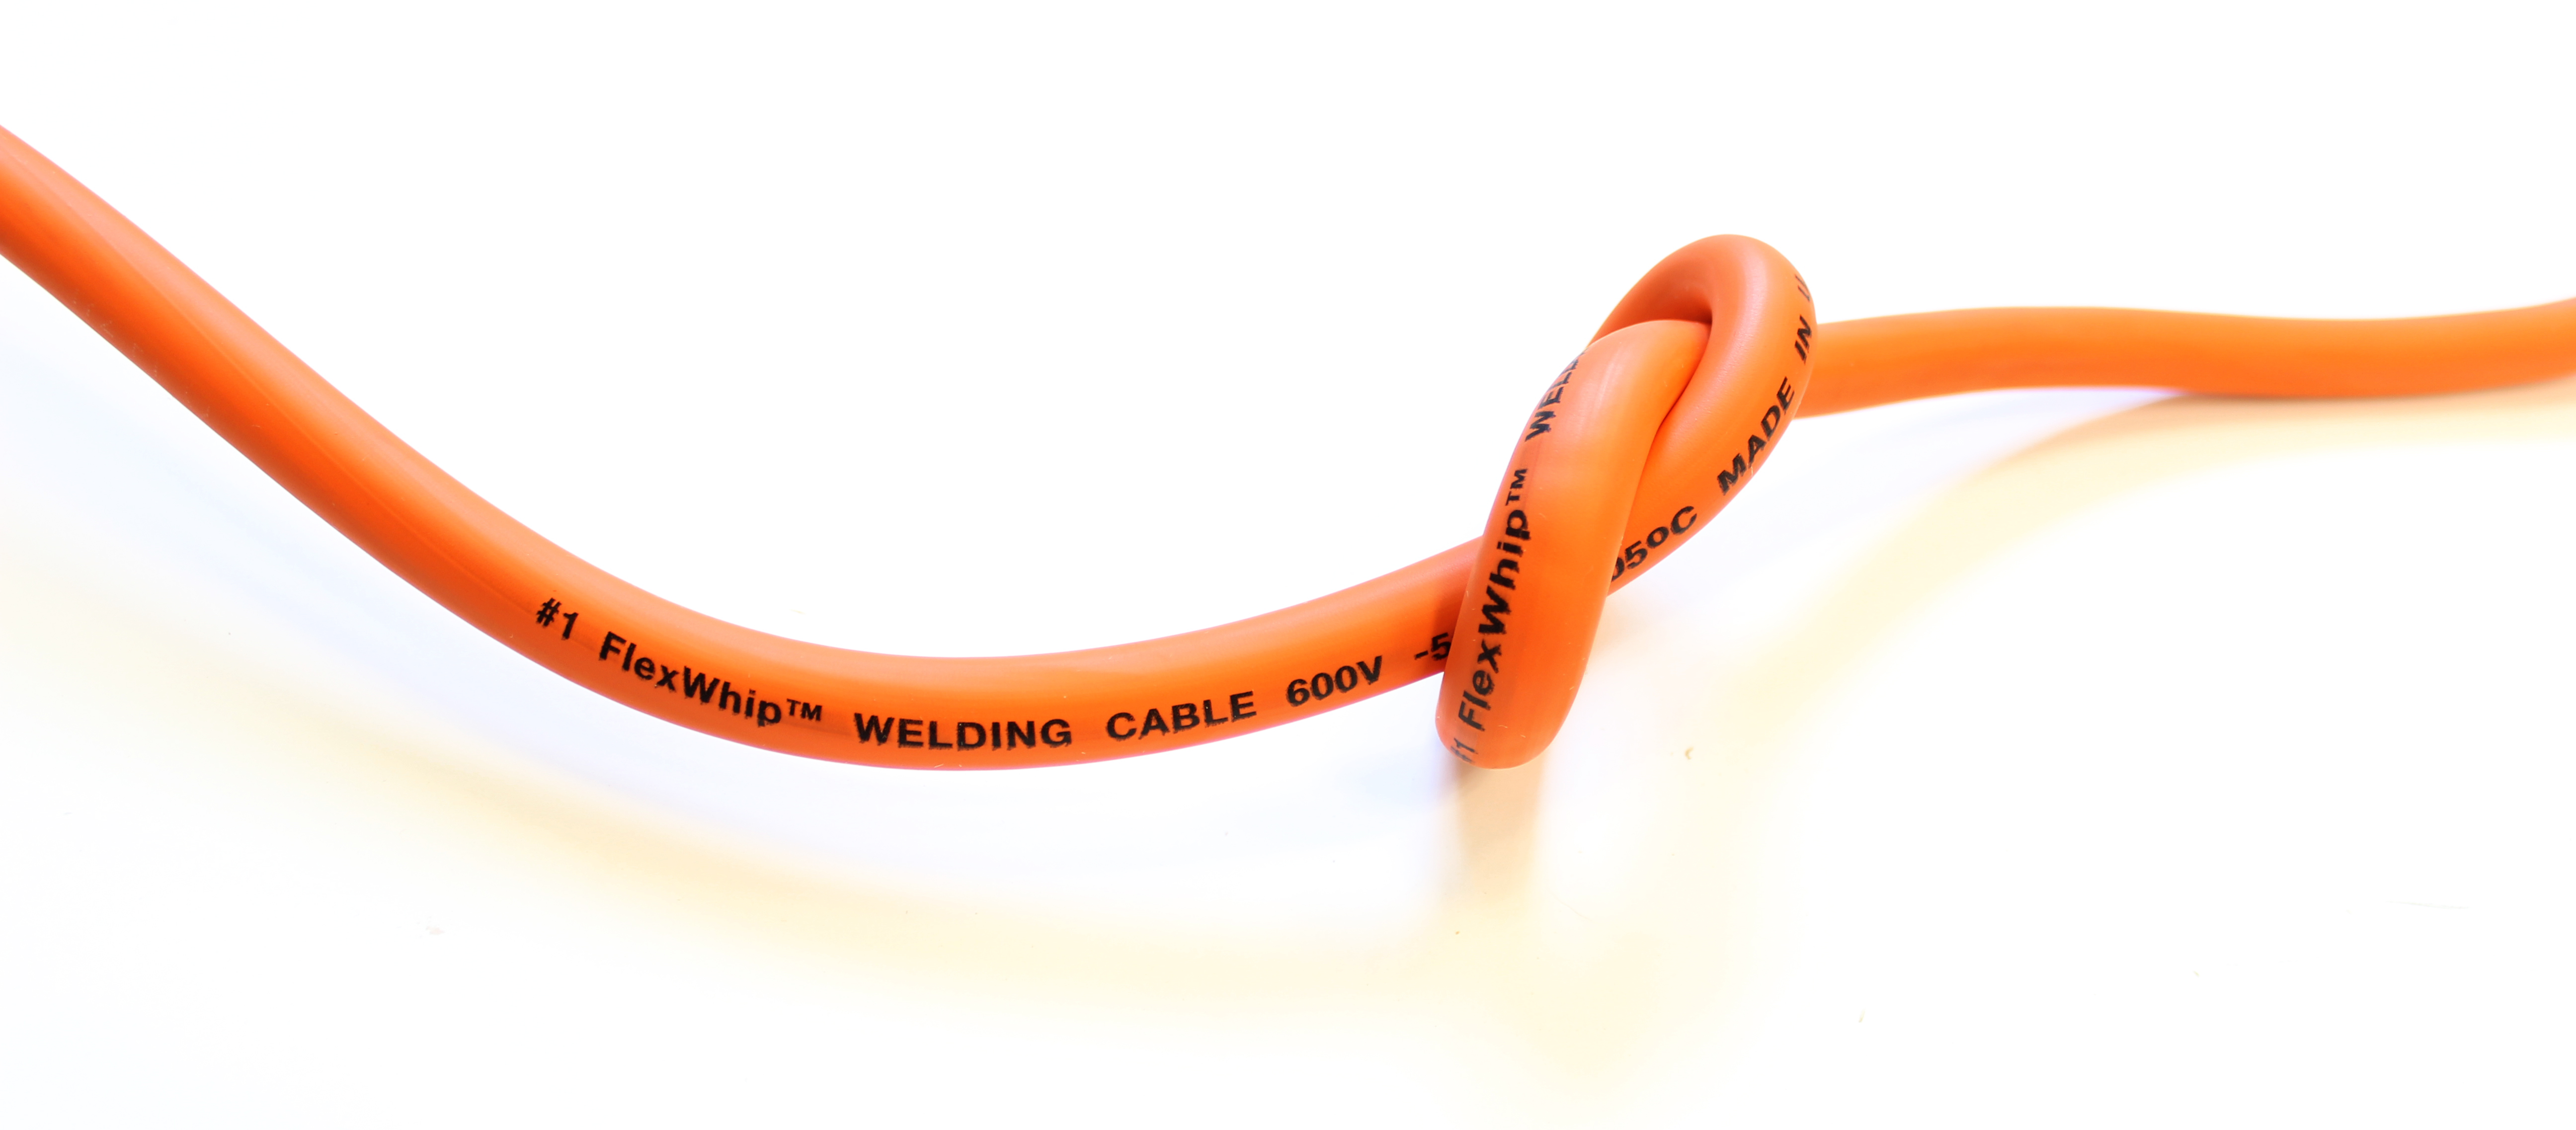 25/' #2 HIGHLY FLEXIBLE WELDING WHIP CABLE ORANGE 600V USA MADE EPDM COPPER AWG